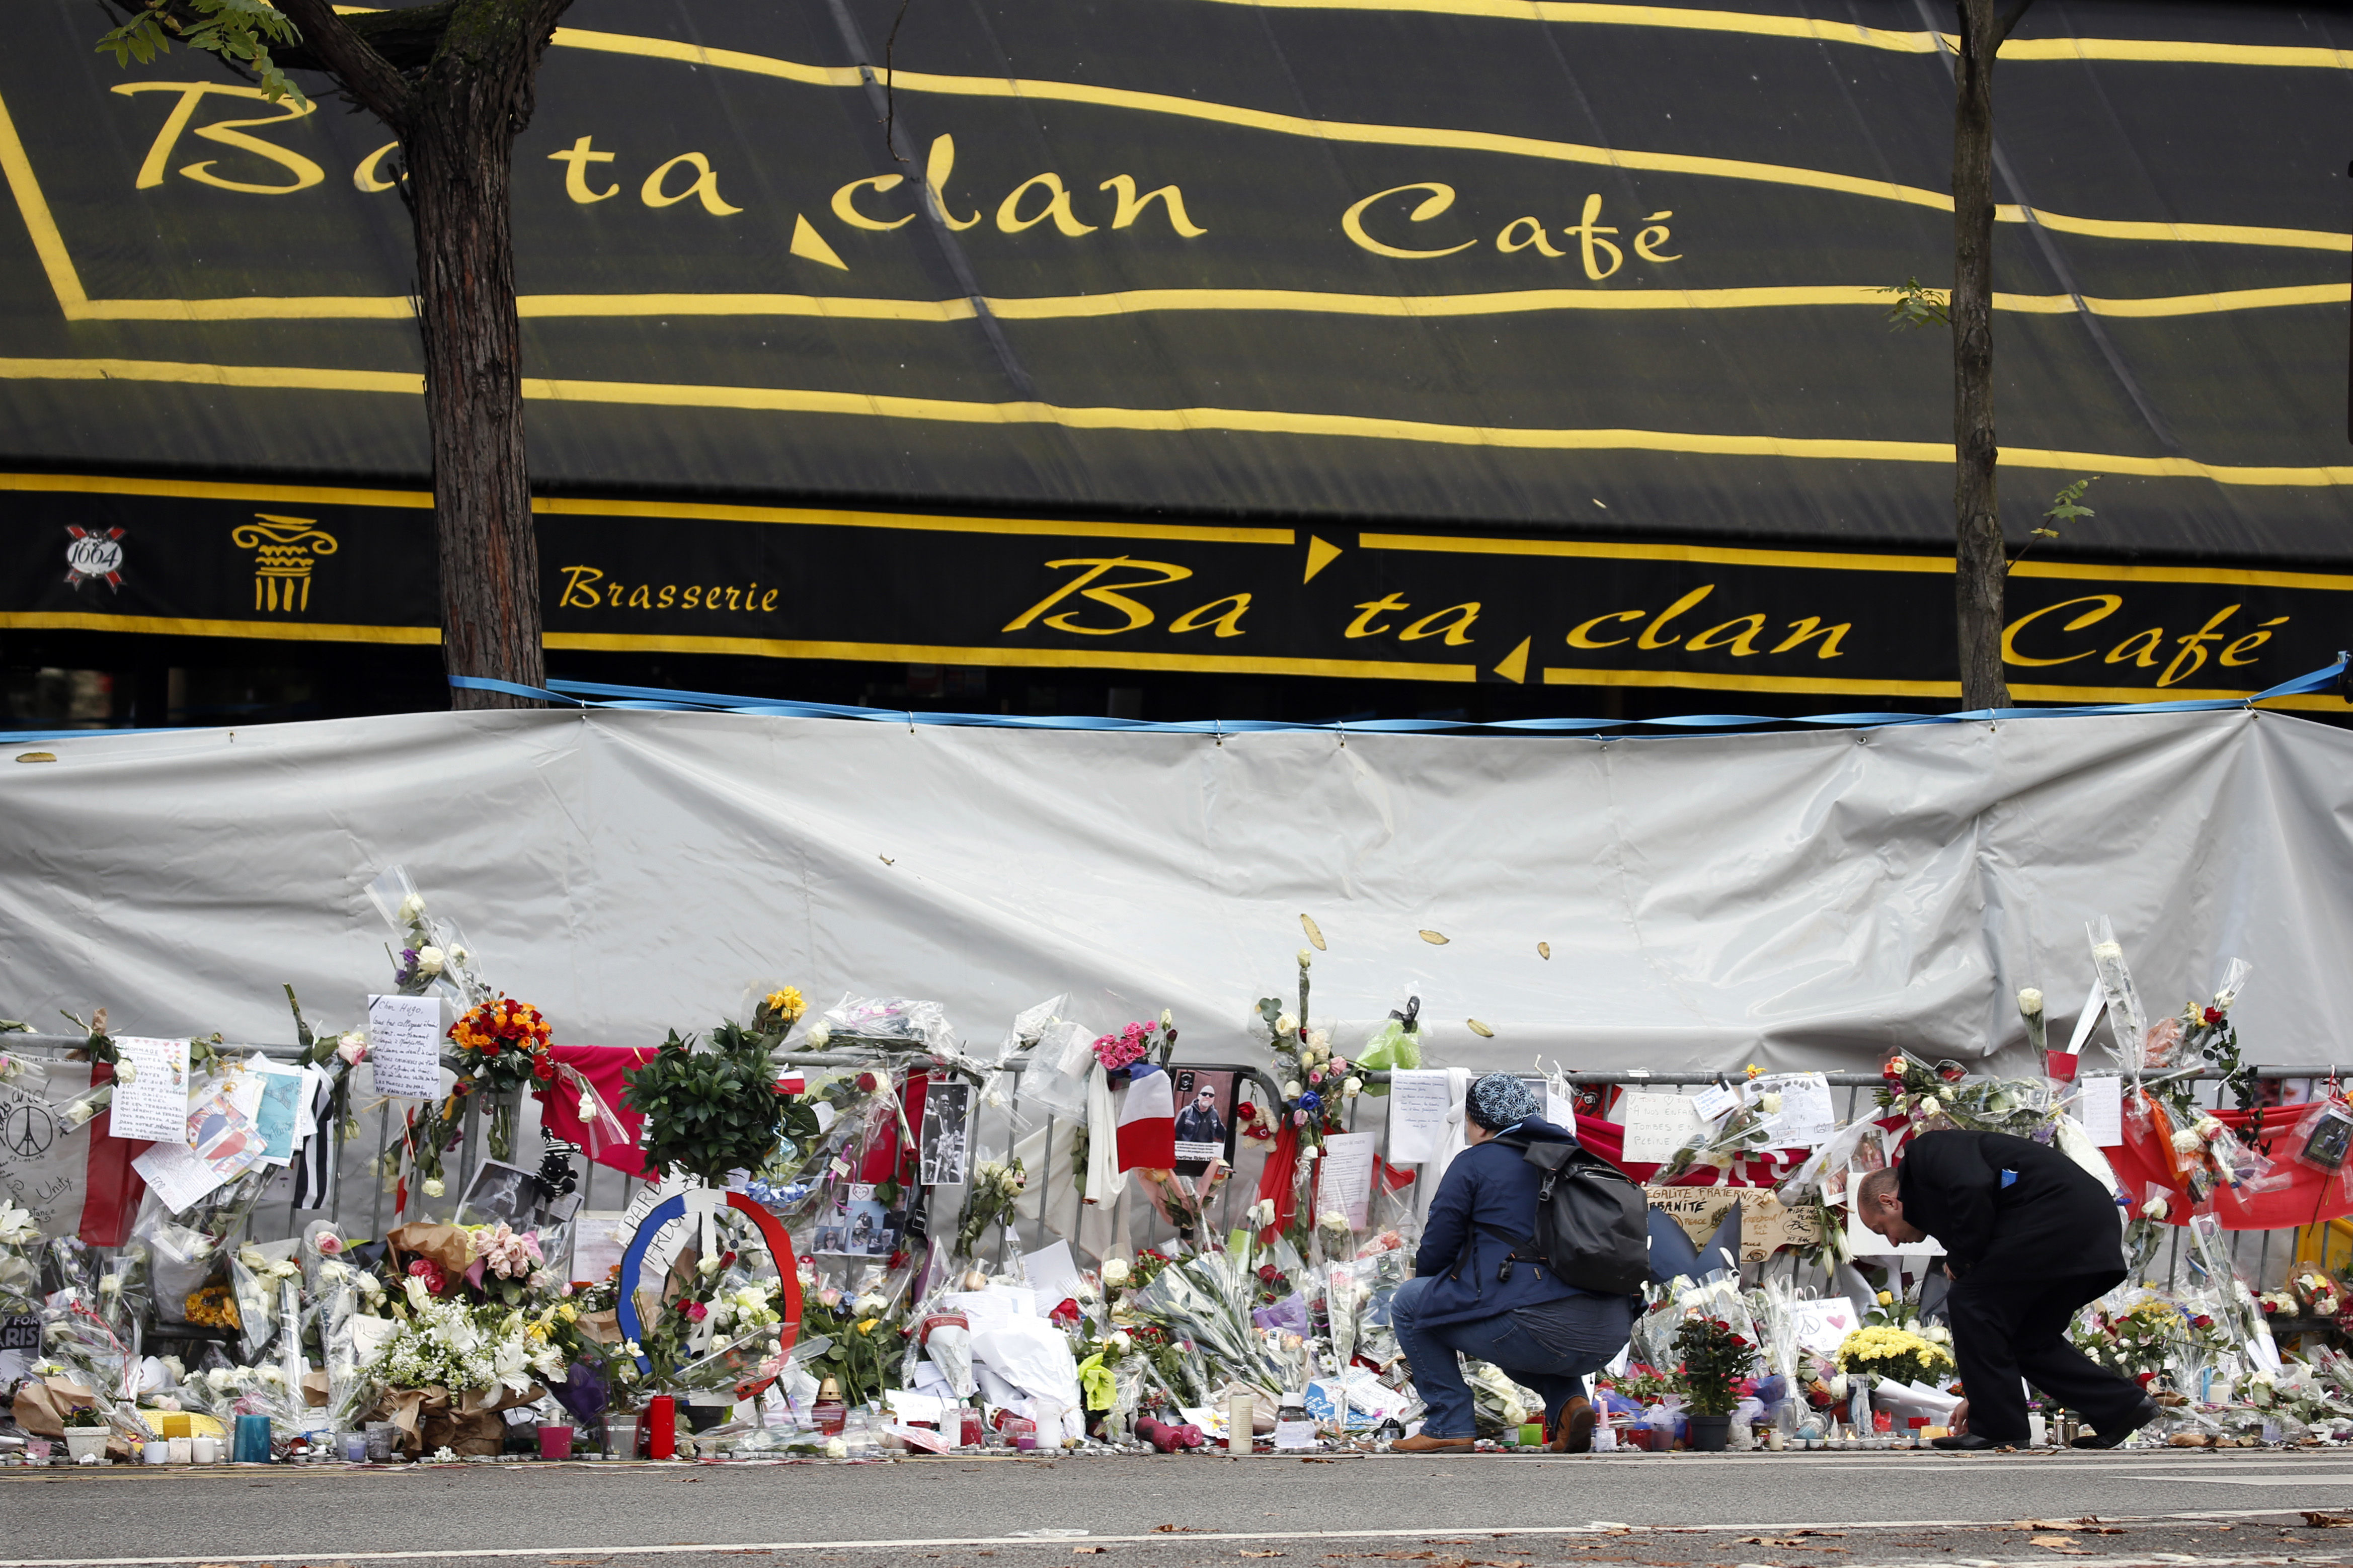 People mourn in front of the screened-off facade of the Bataclan Cafe adjoining the concert hall, one of the sites of the deadly attacks in Paris, France, a day before a ceremony to pay tribute to the 130 victims, Nov. 26, 2015.